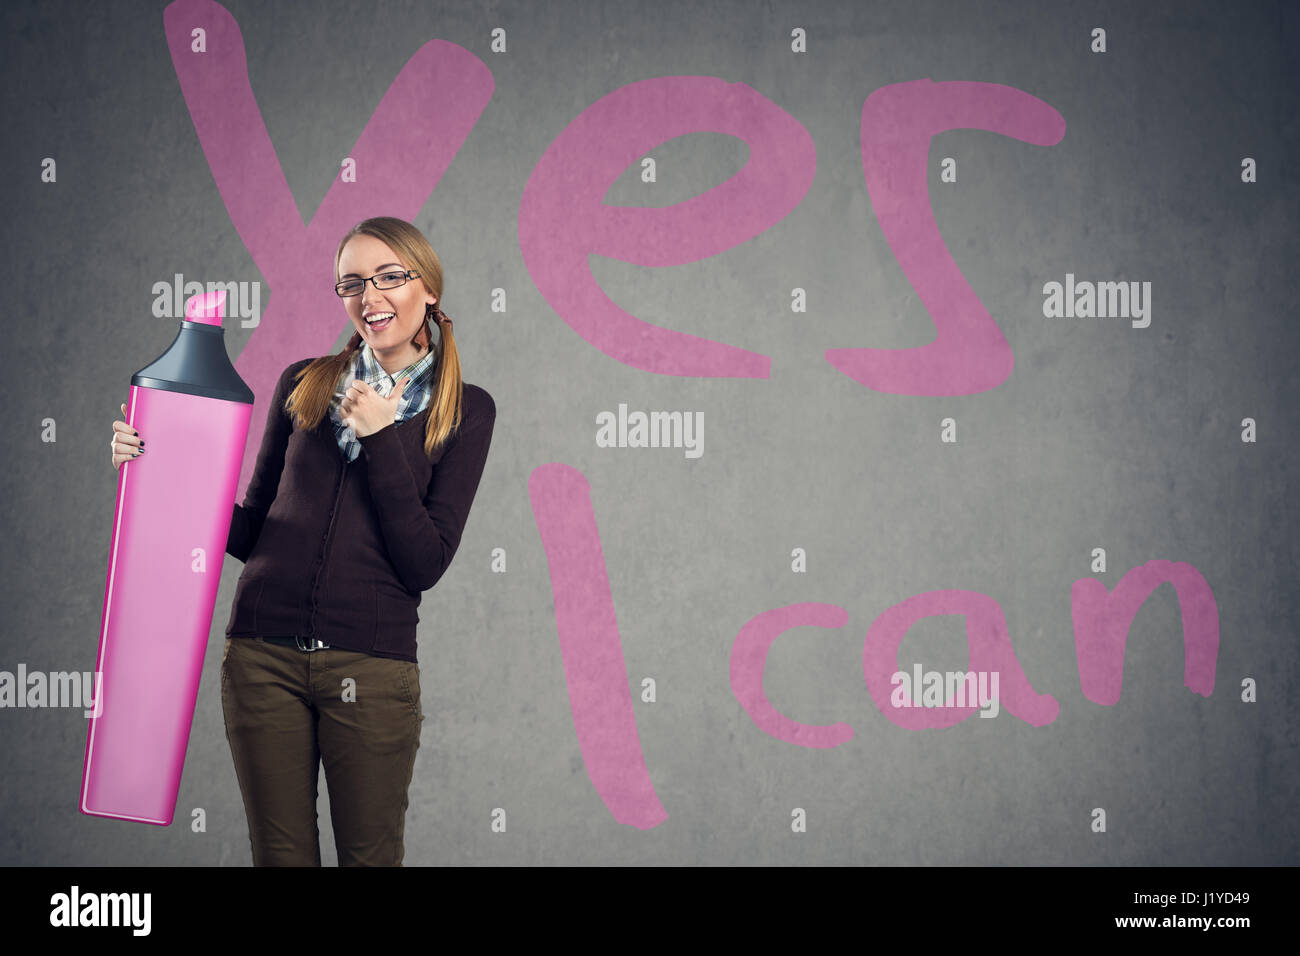 Cute girl believe in yourself with sing yes I can in background - Stock Image